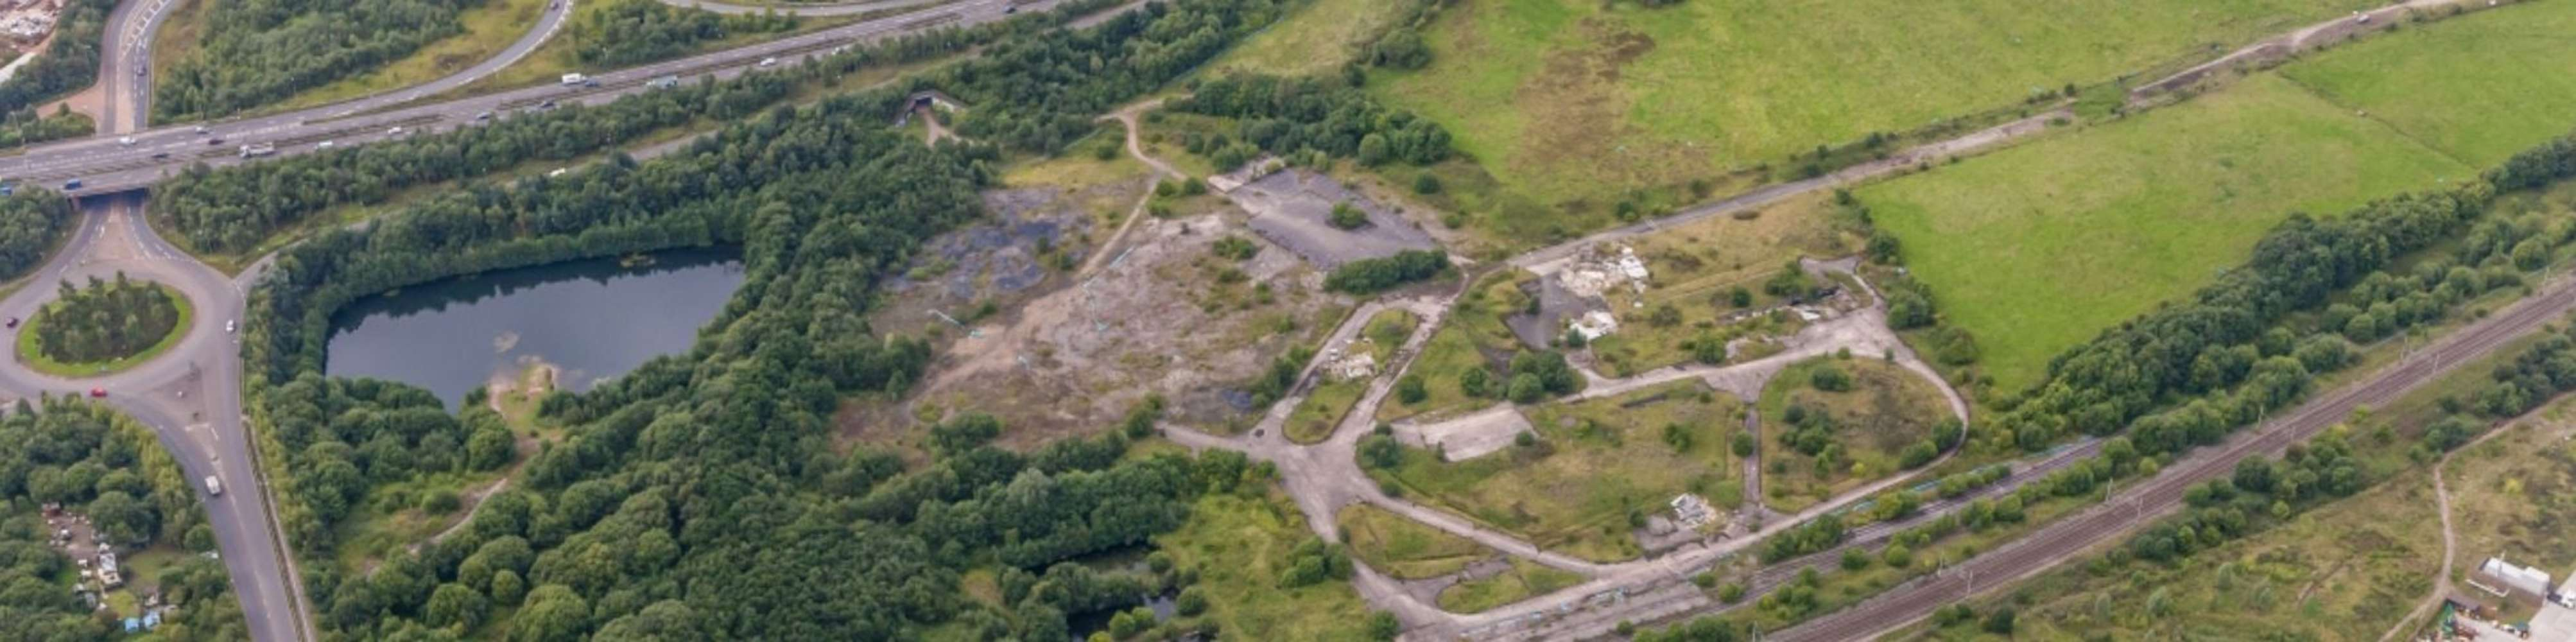 Land Stoke-on-trent, ST6 4BF  - Chatterley Valley - 24738